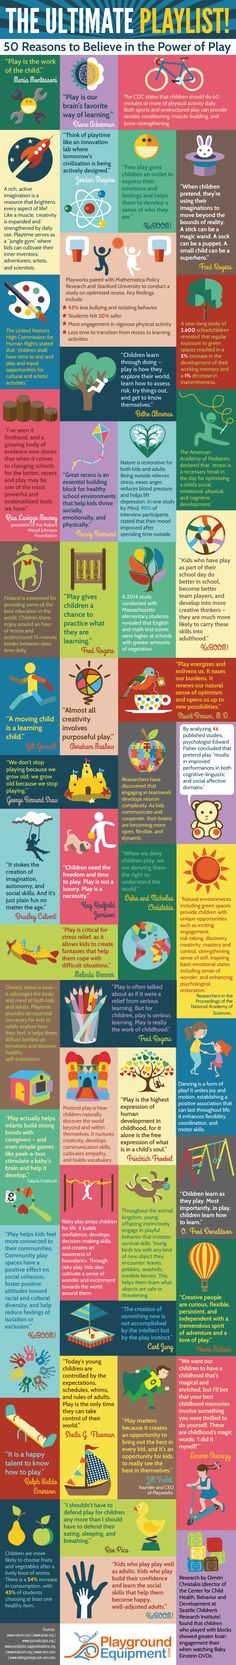 The 50 Reasons to Believe in the Power of Play Infographic shows that young children need to play more and stress less due to standardized testing.